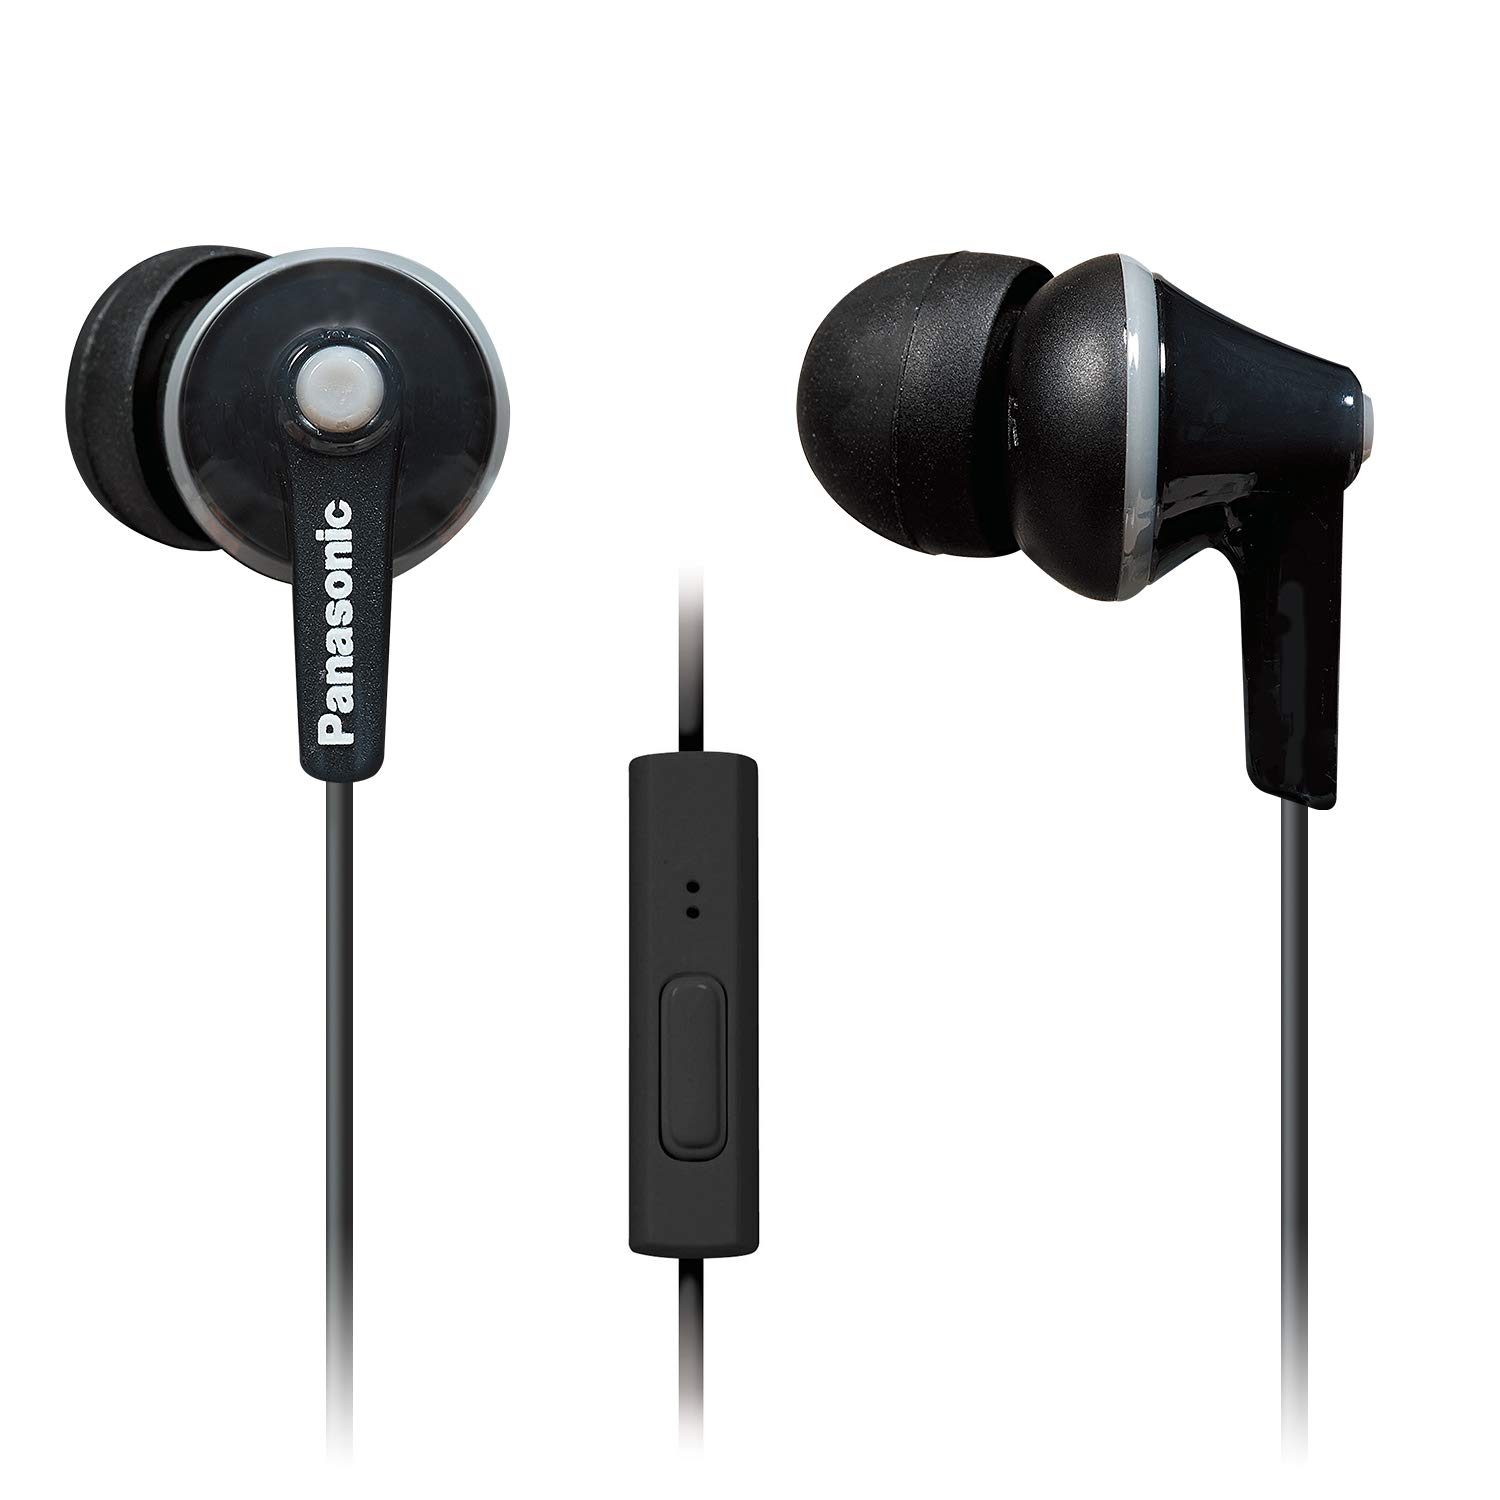 Panasonic ErgoFit In-Ear Earbuds Headphones RP-TCM125-K with Microphone and Volume Controller (Black)